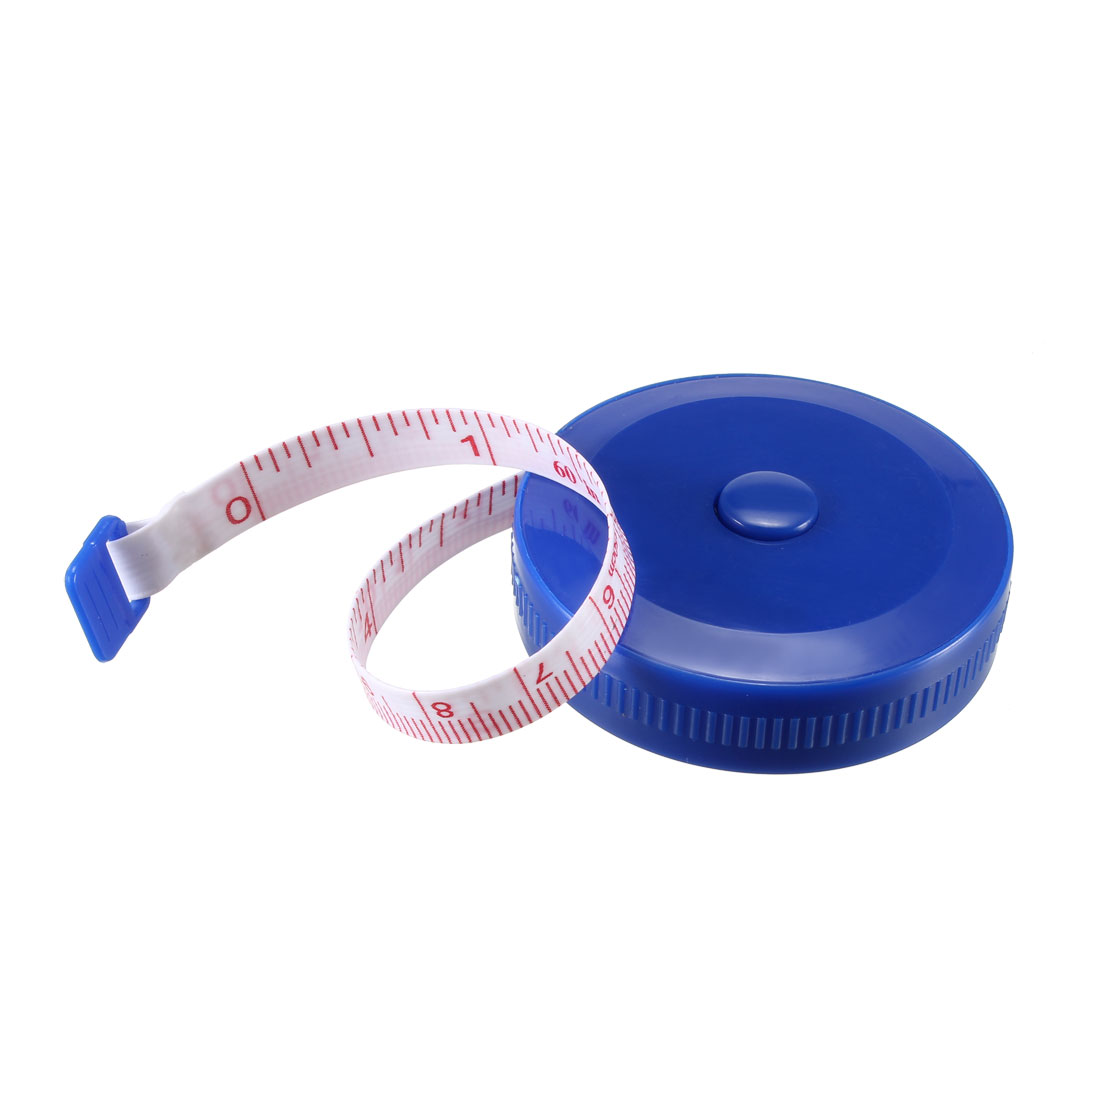 60 Inch Measuring Tape Soft Dual Sided for Tailor Sewing 1.5 Meter Blue 3pcs